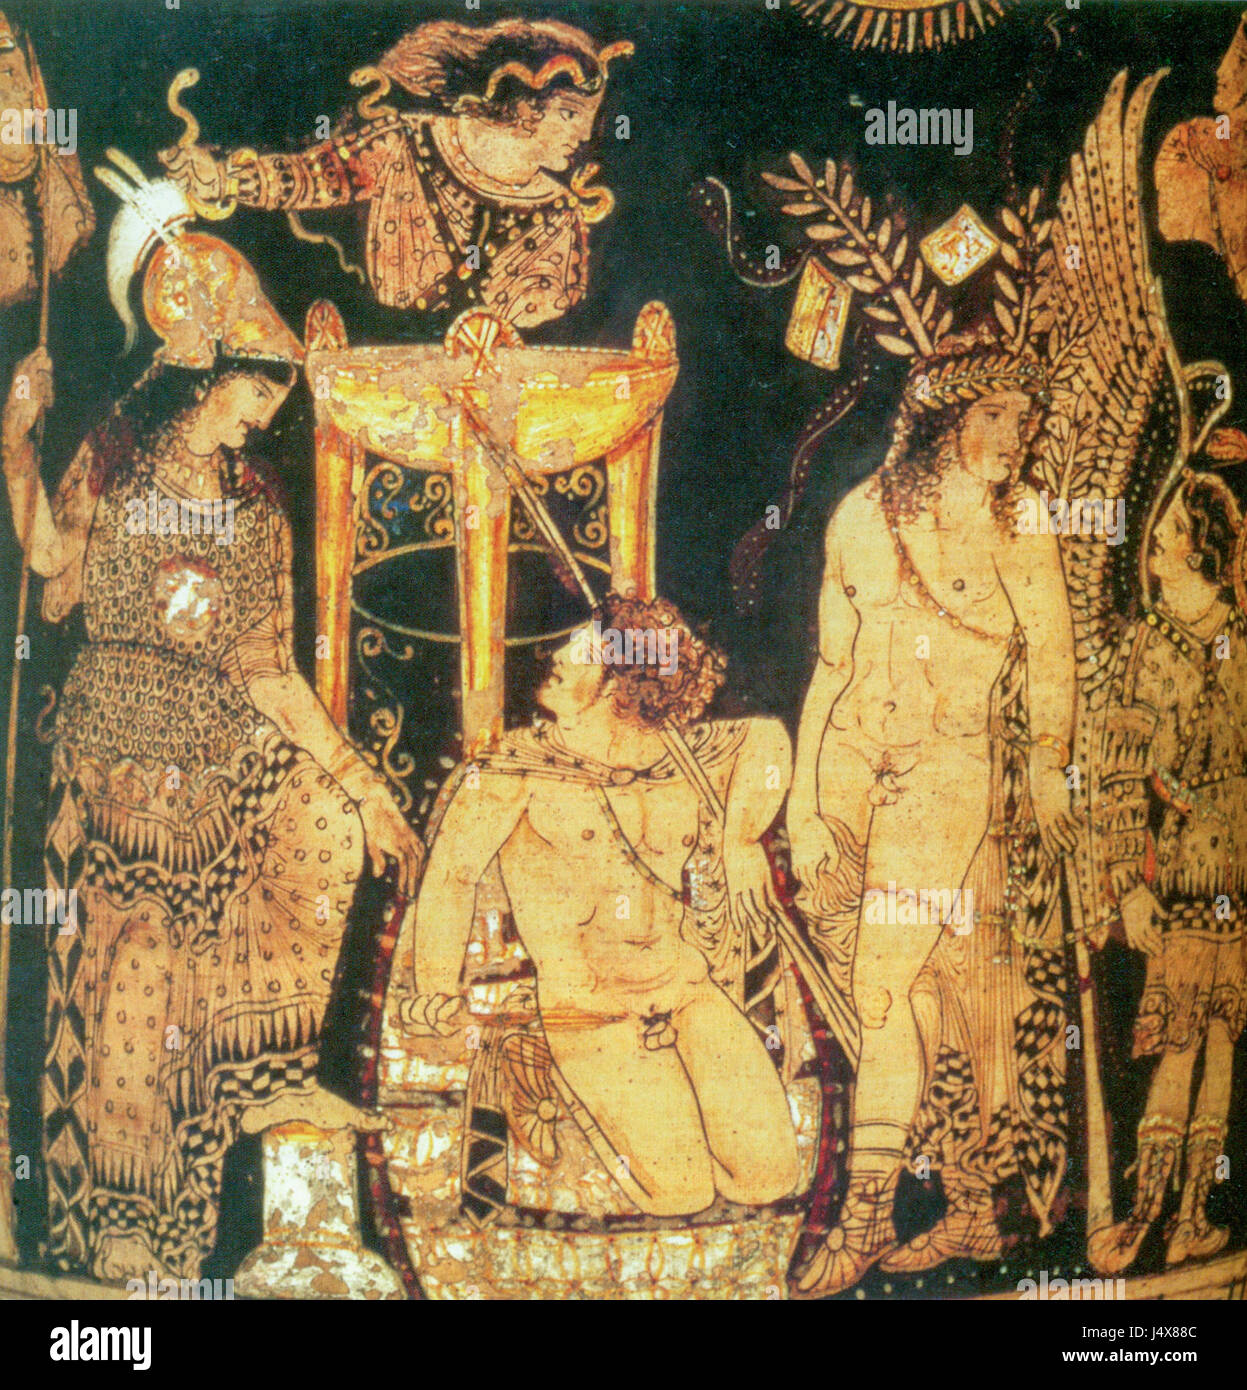 Theatre scene painted by Python, ancient Greek vase painter - Stock Image